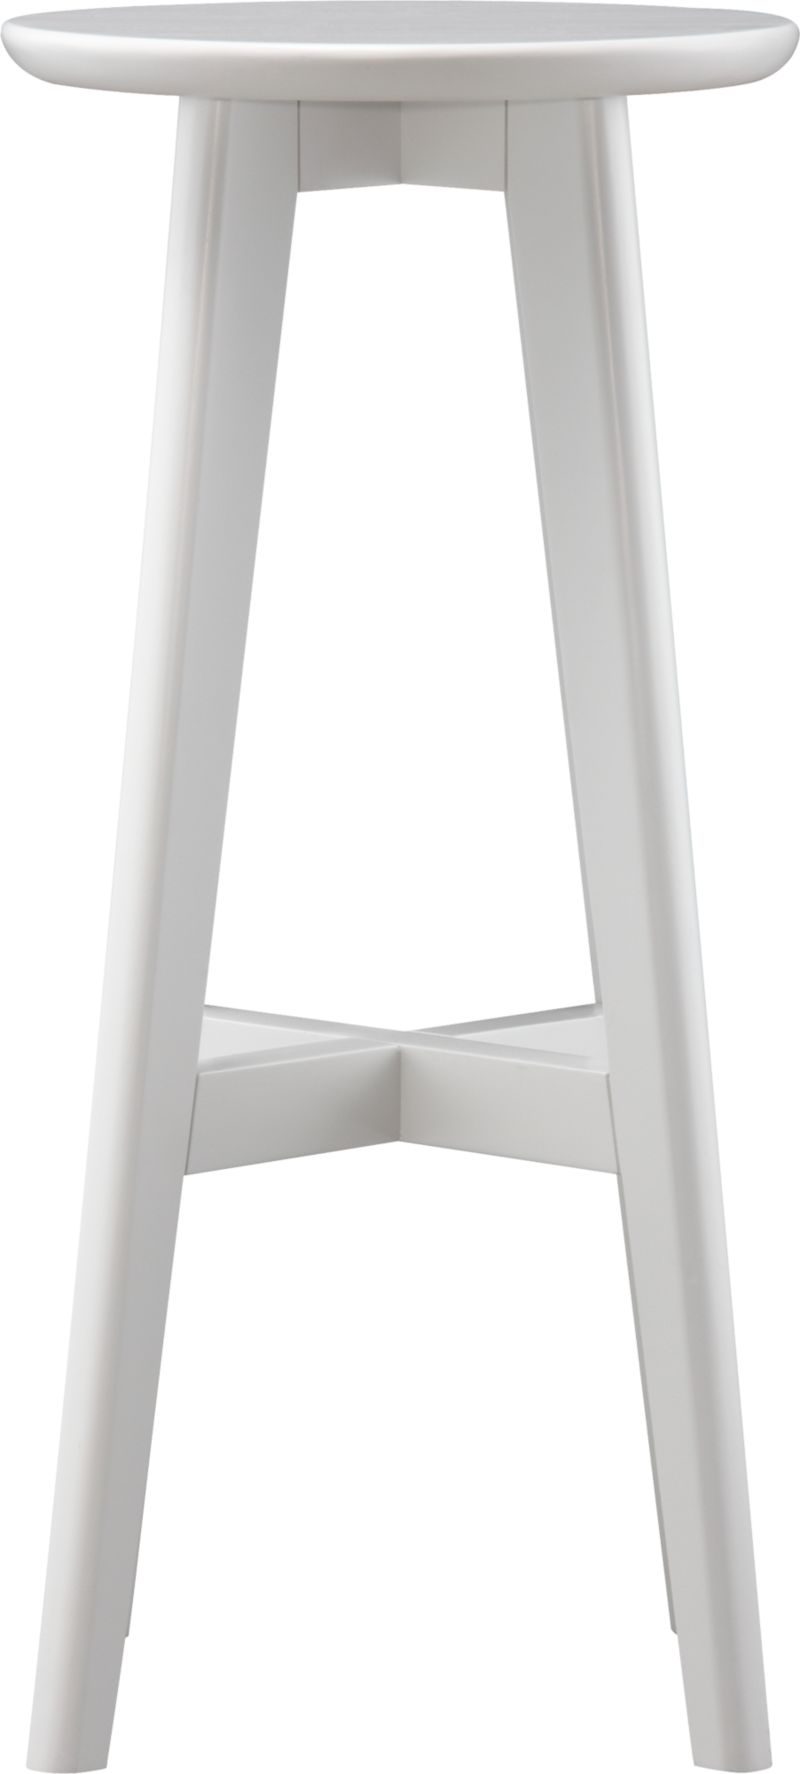 "Our classic, versatile stool takes a clean and simple stance in solid painted rubberwood with a clear lacquer finish and provides seating sized right for bars. Crossbar brace makes a comfortable footrest.<br /><br /><NEWTAG/><ul><li>Solid rubberwood</li><li>Lacquer finish</li><li>30""H seat sized for bars</li><li>Made in Thailand</li></ul>"